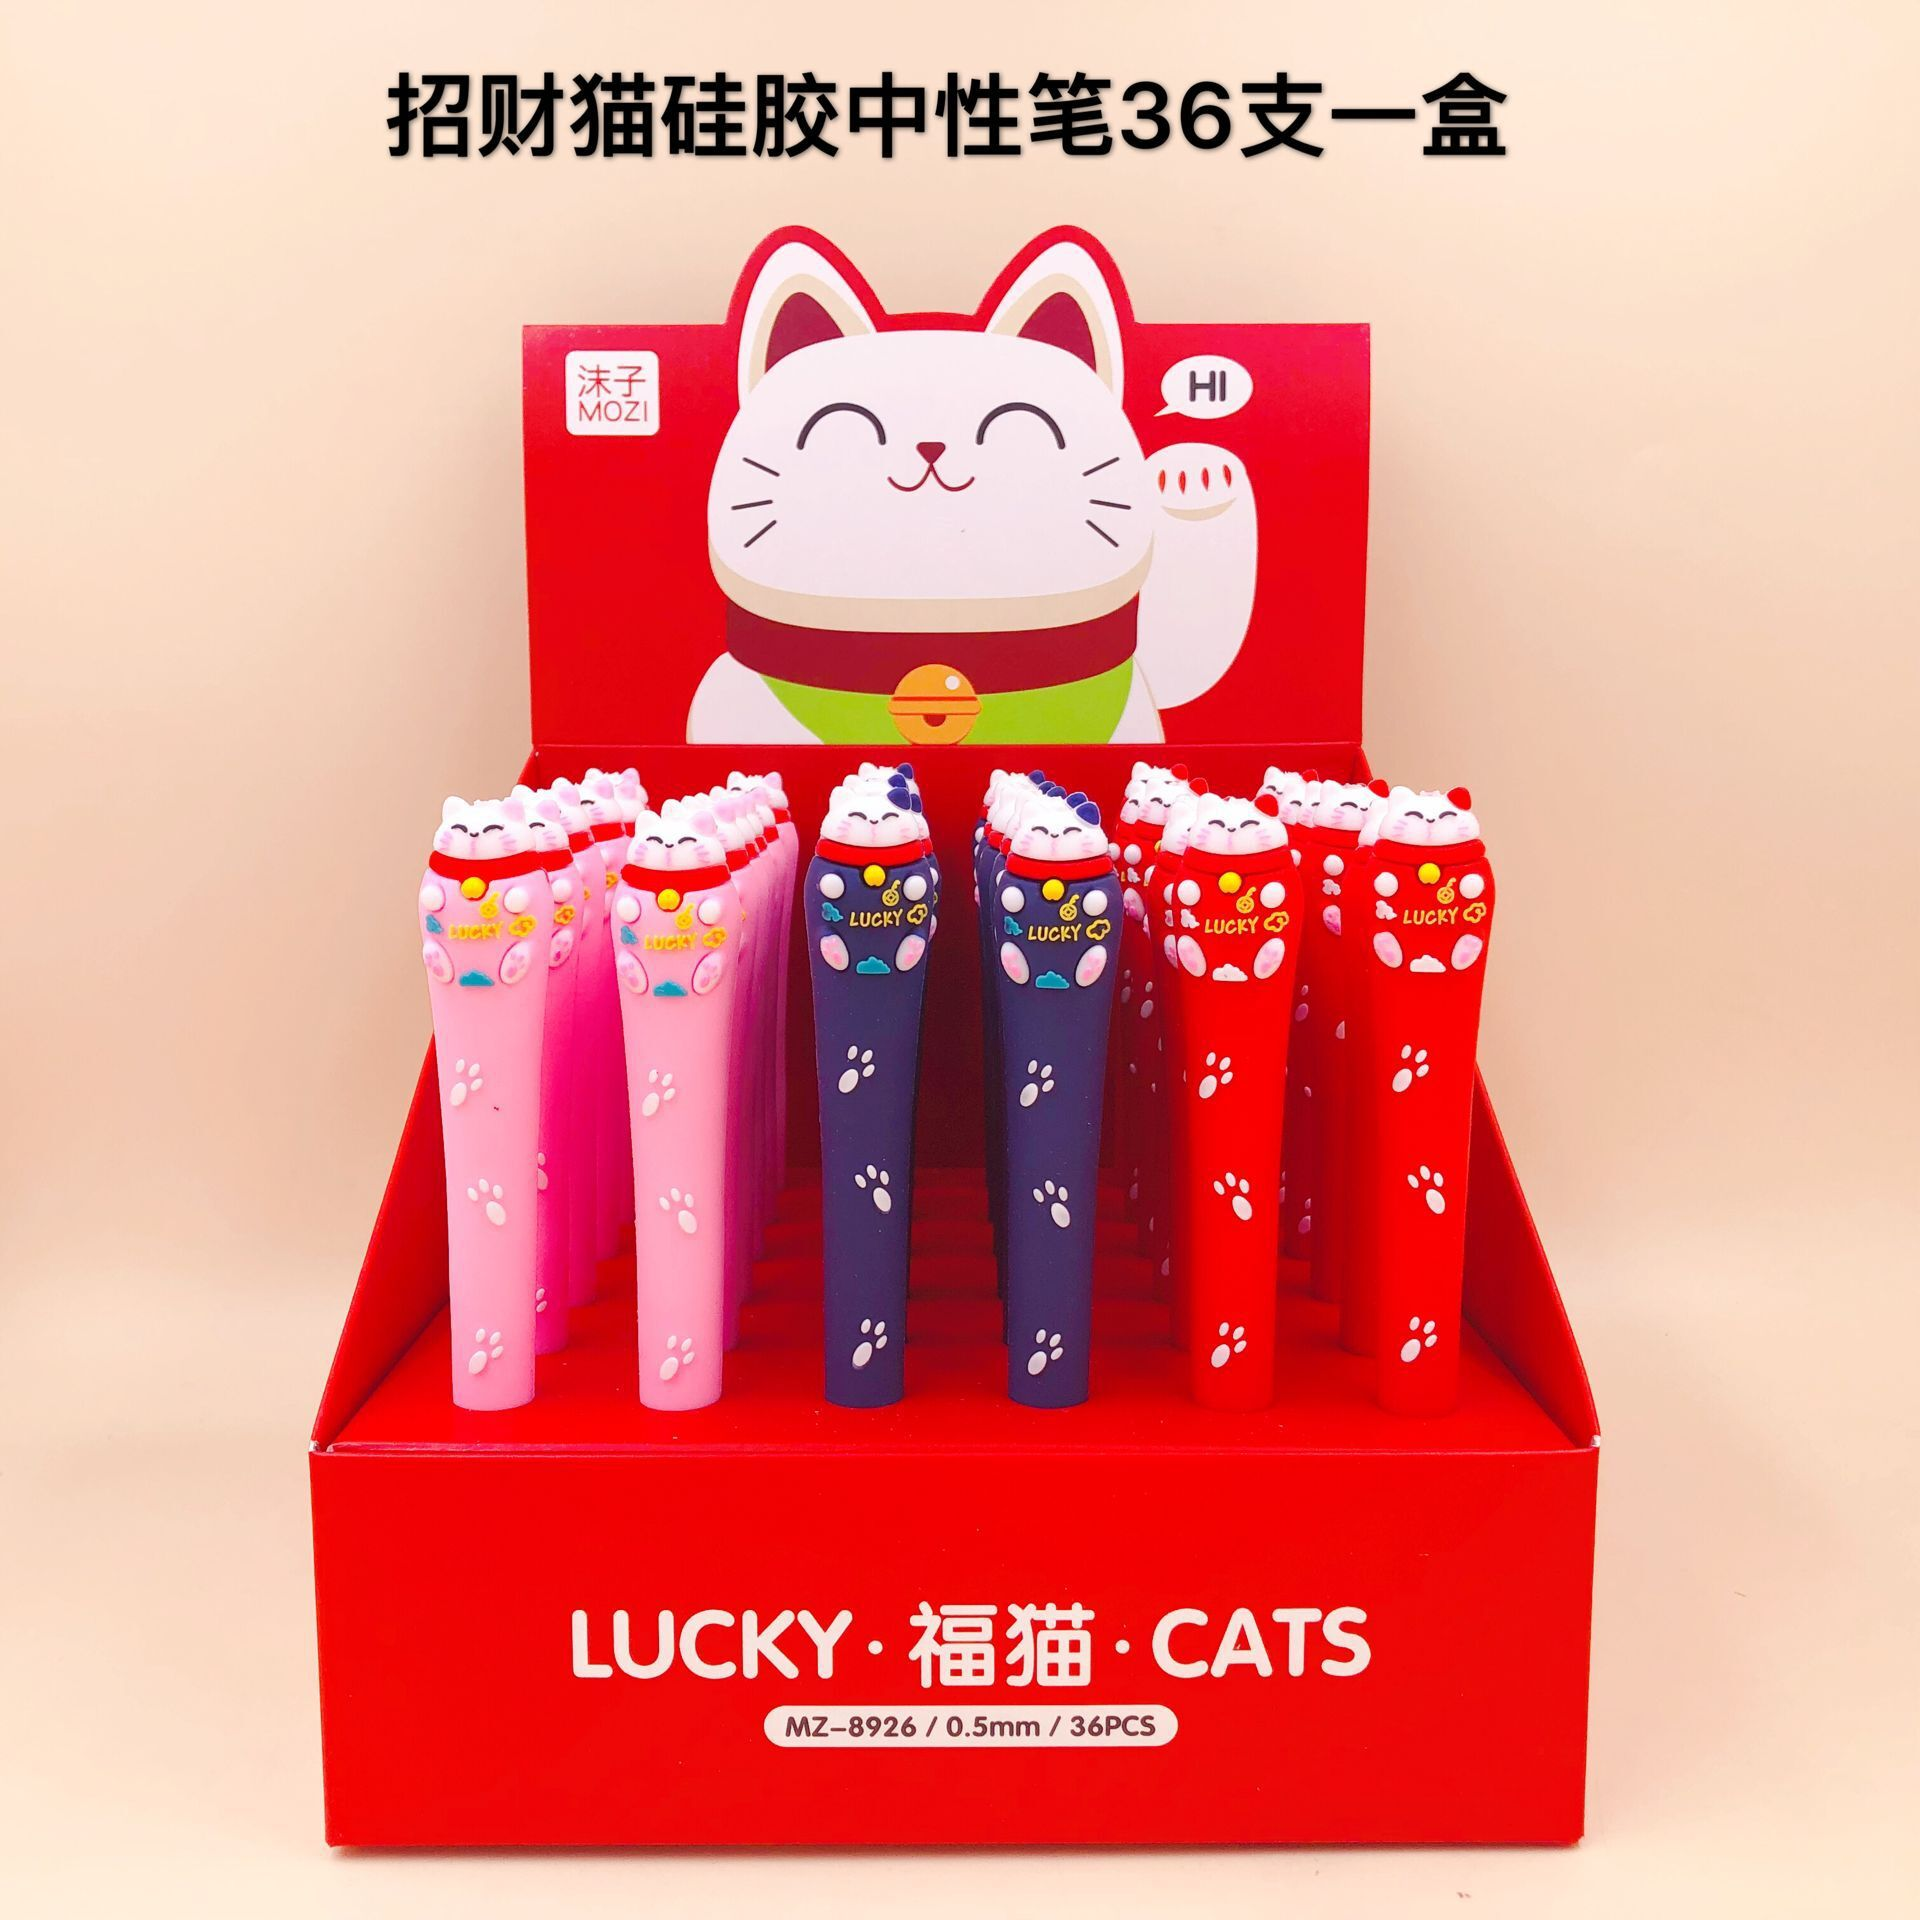 1pcs Gel Pens Lucky Cat Black Colored Gel-inkpens For Writing Cute Stationery Office School Supplies 0.5mm